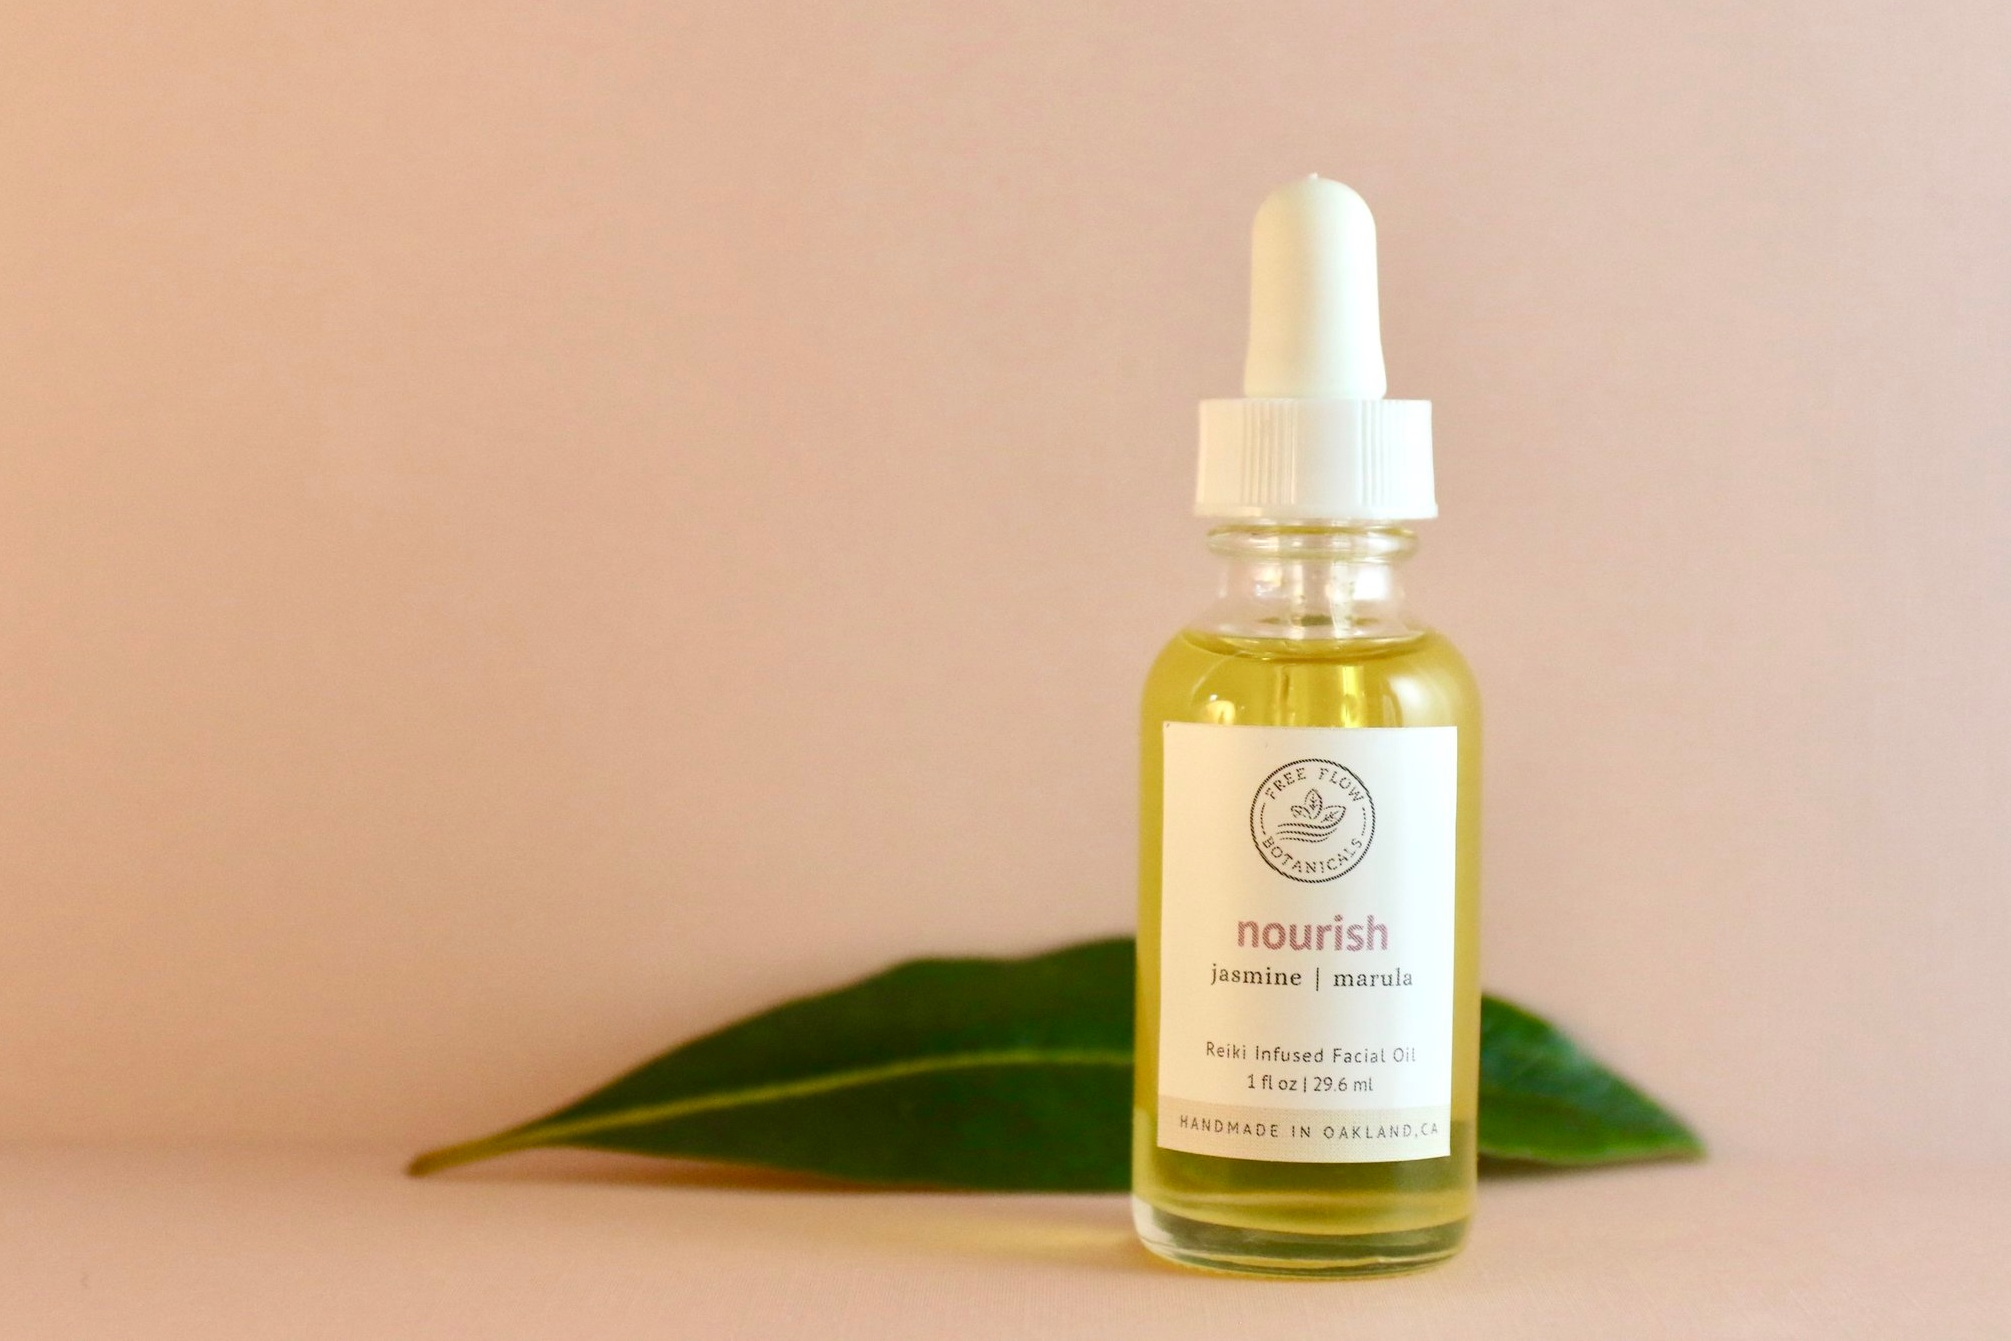 Nourish Facial Oil - from $26